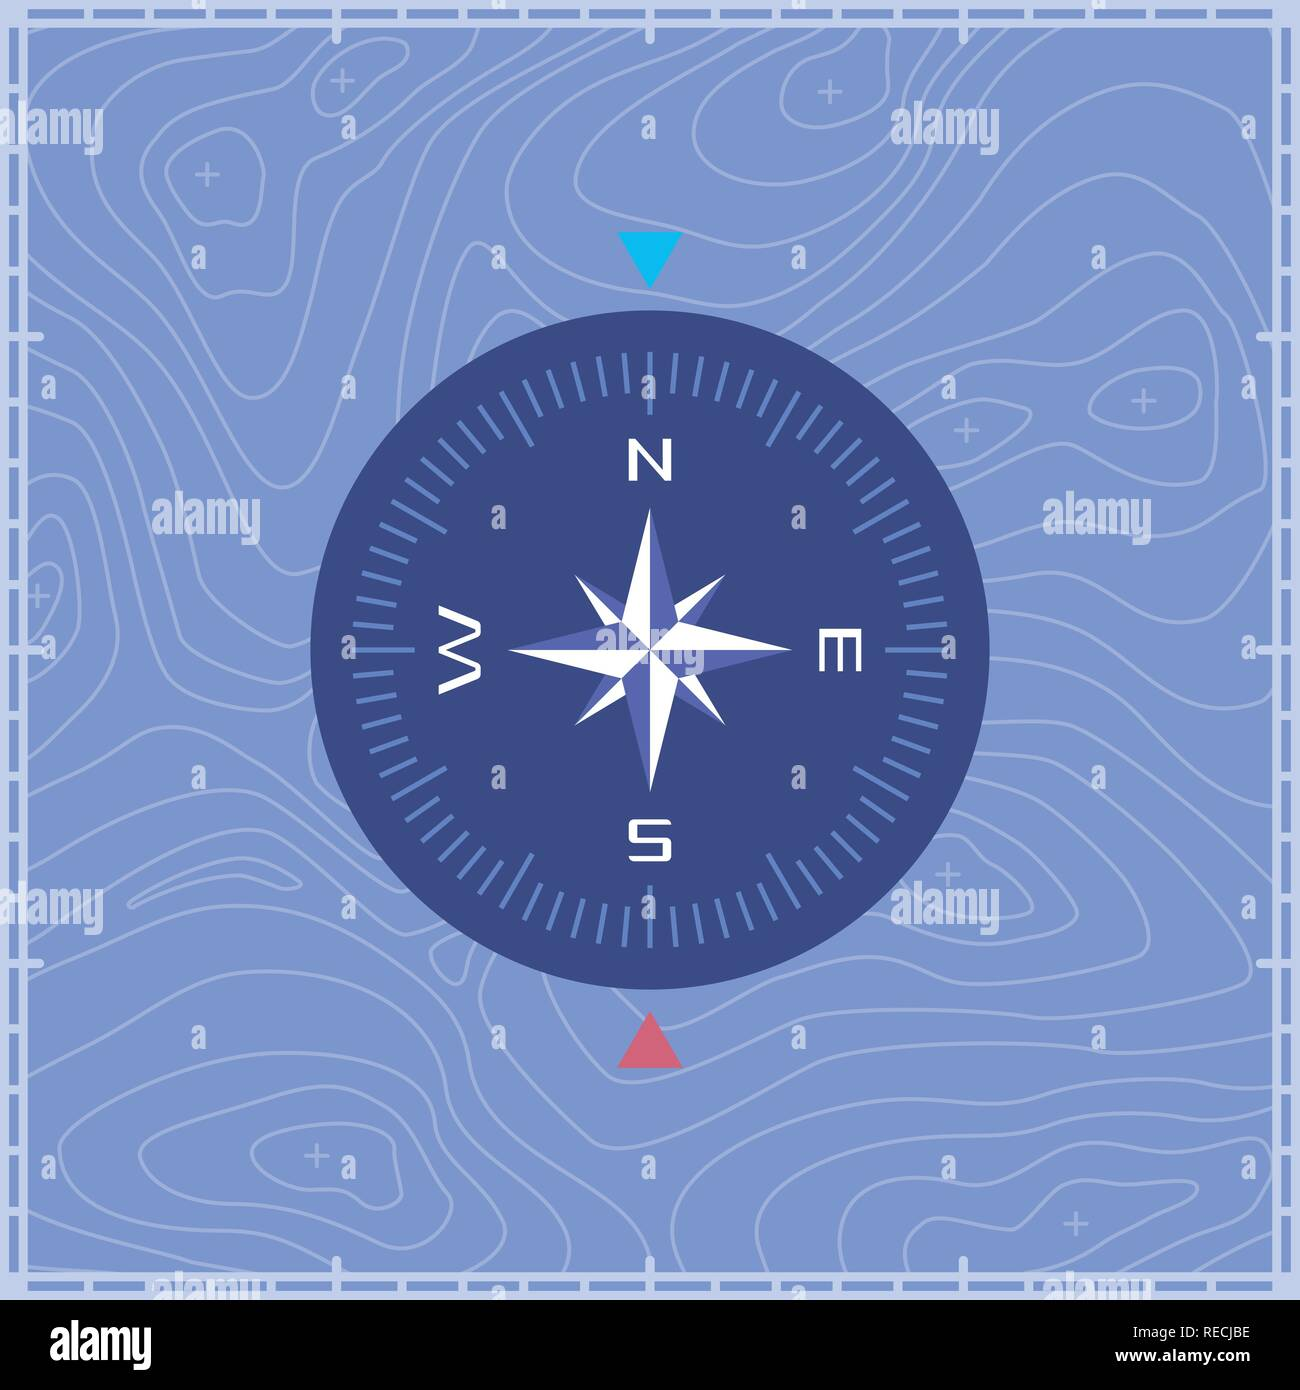 Cartographic Compass - Stock Image